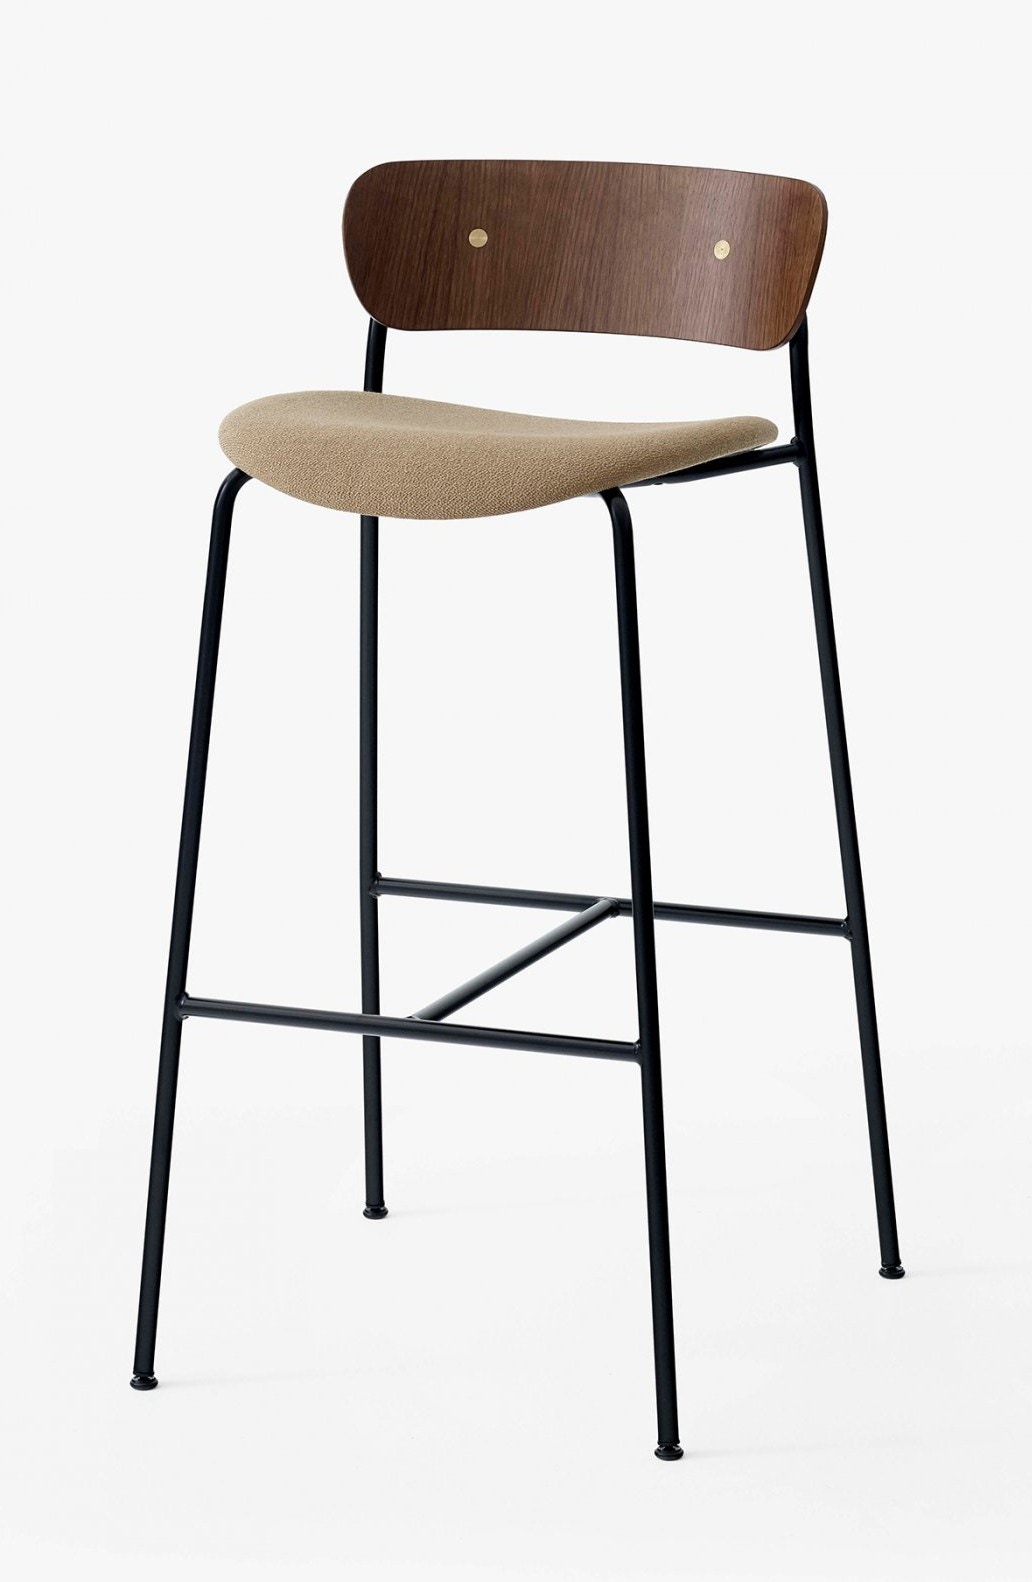 &tradition Pavilion AV10 Bar Stool - Upholstered Seat